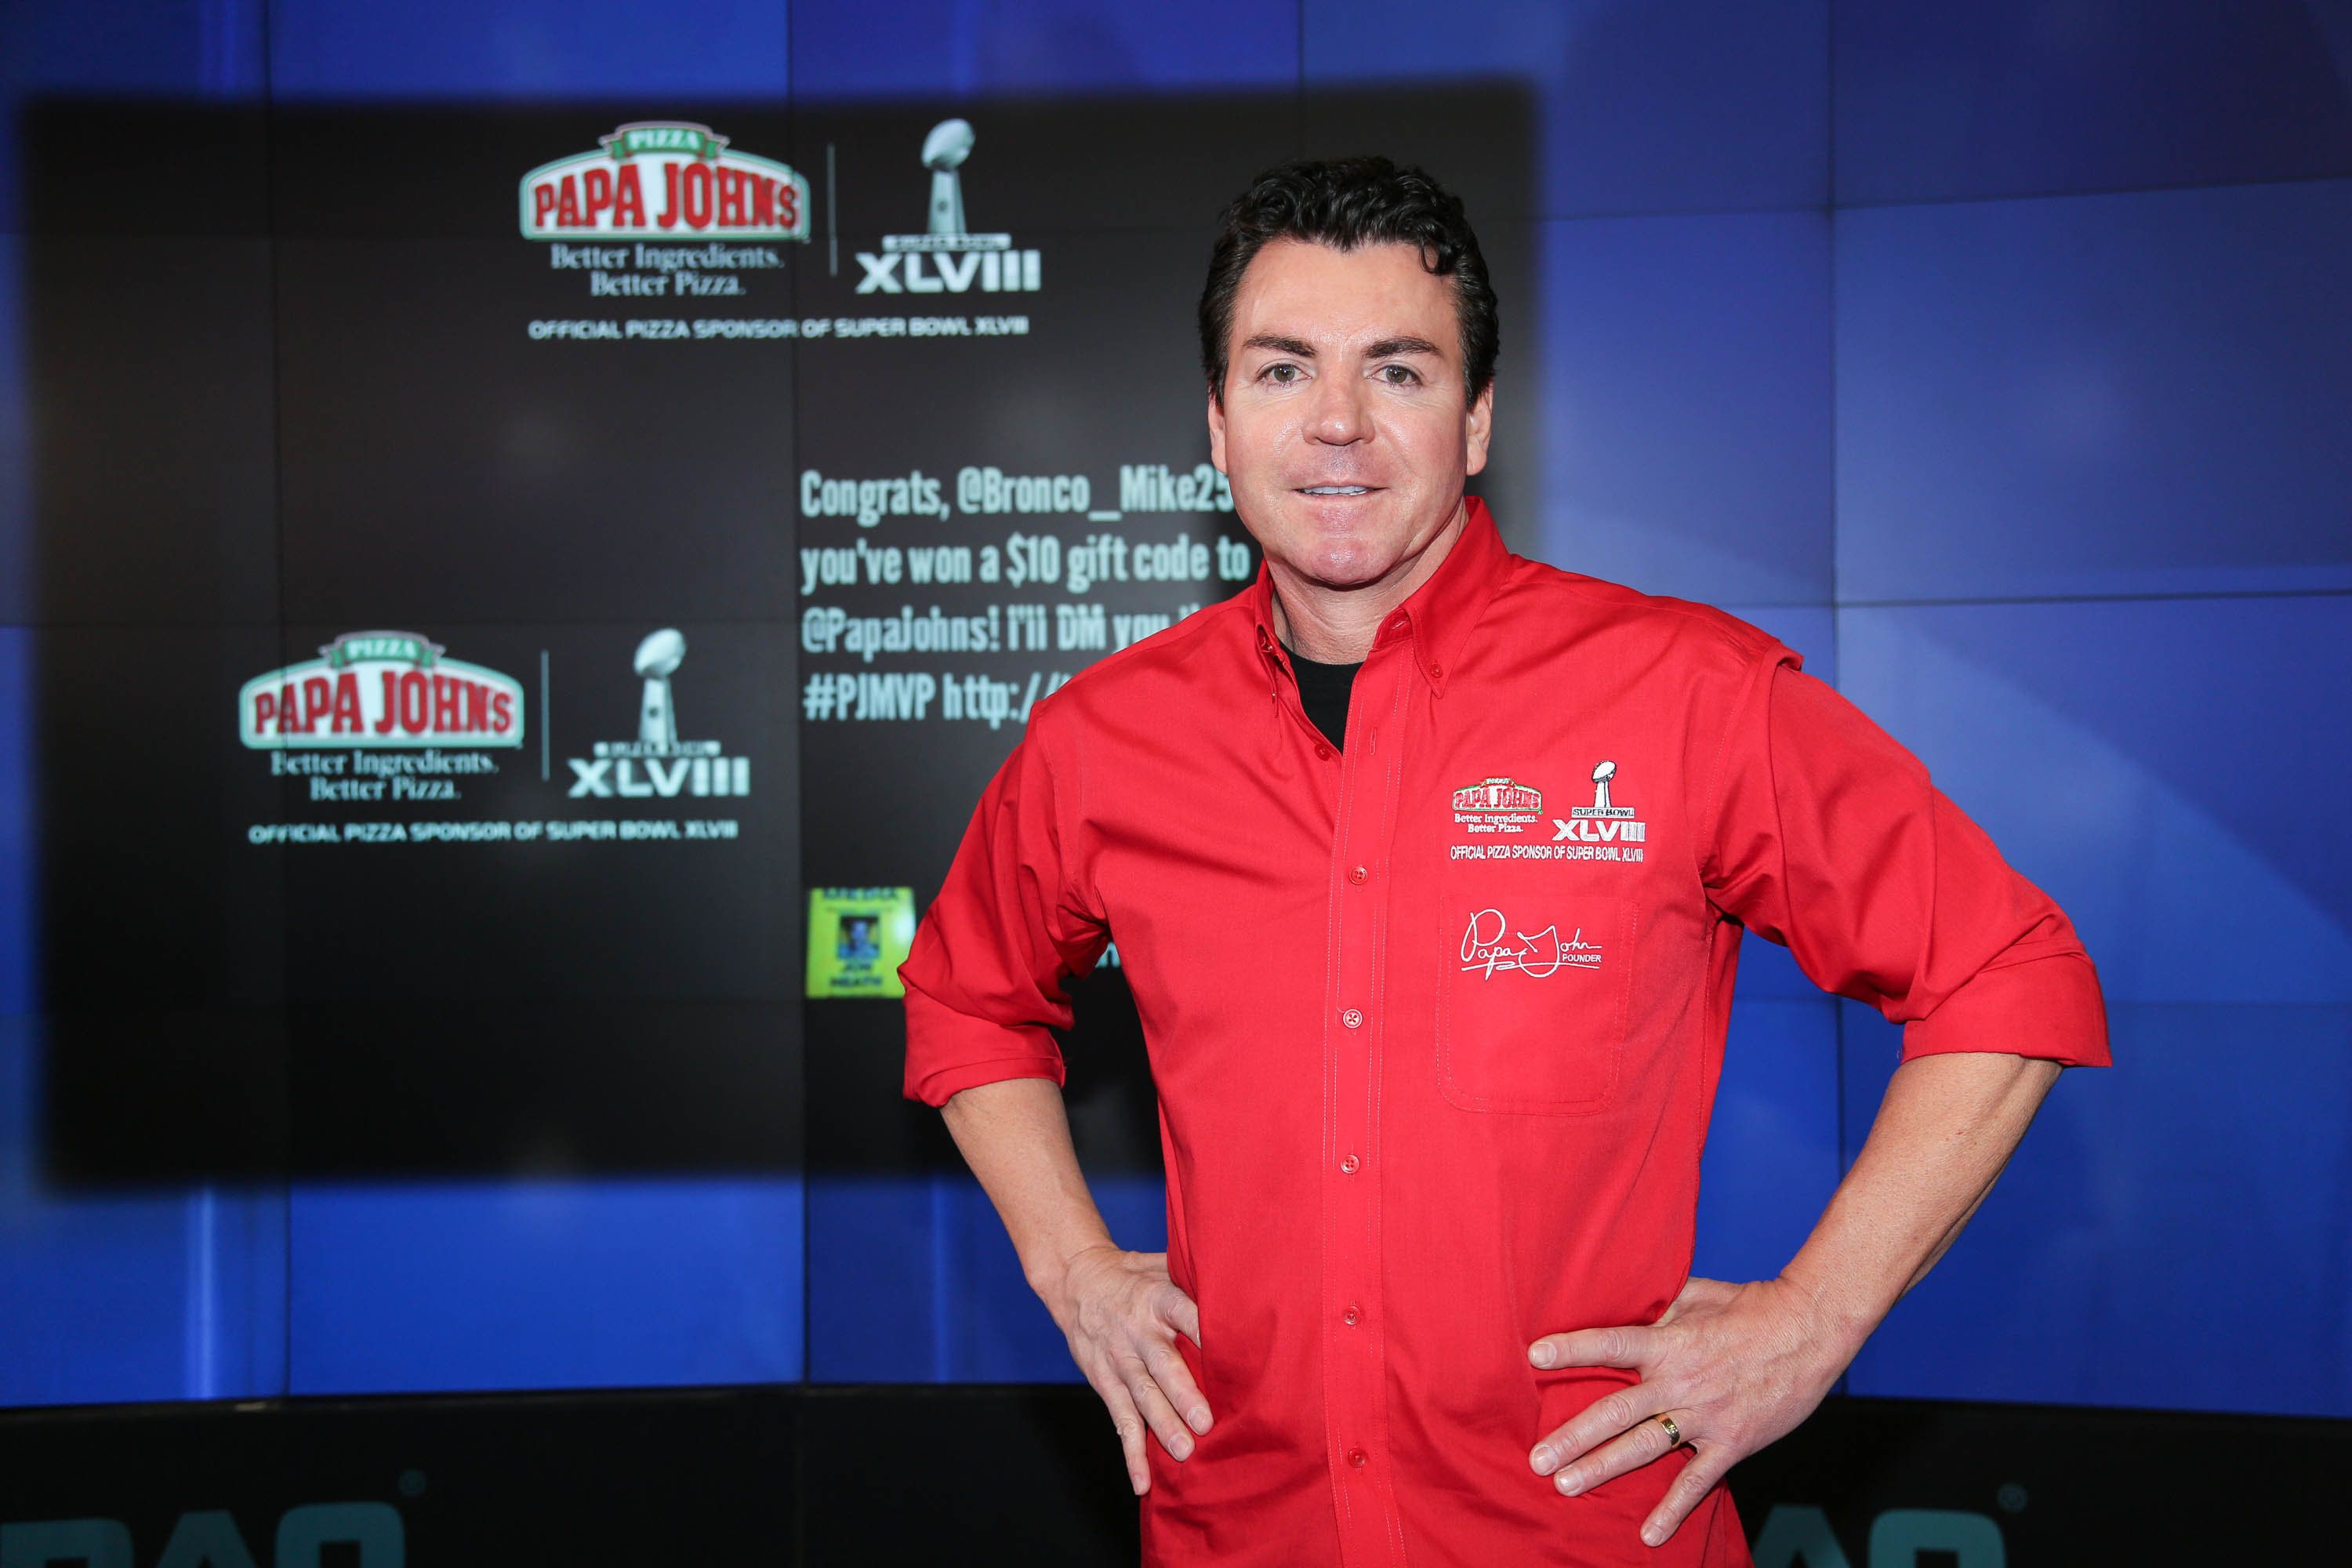 NEW YORK, NY - JANUARY 31:  John H. Schnatter, Founder, Chairman & CEO of Papa John's International, Inc. rings the NASDAQ Opening Bell at NASDAQ MarketSite on January 31, 2014 in New York City.  (Photo by Rob Kim/Getty Images)